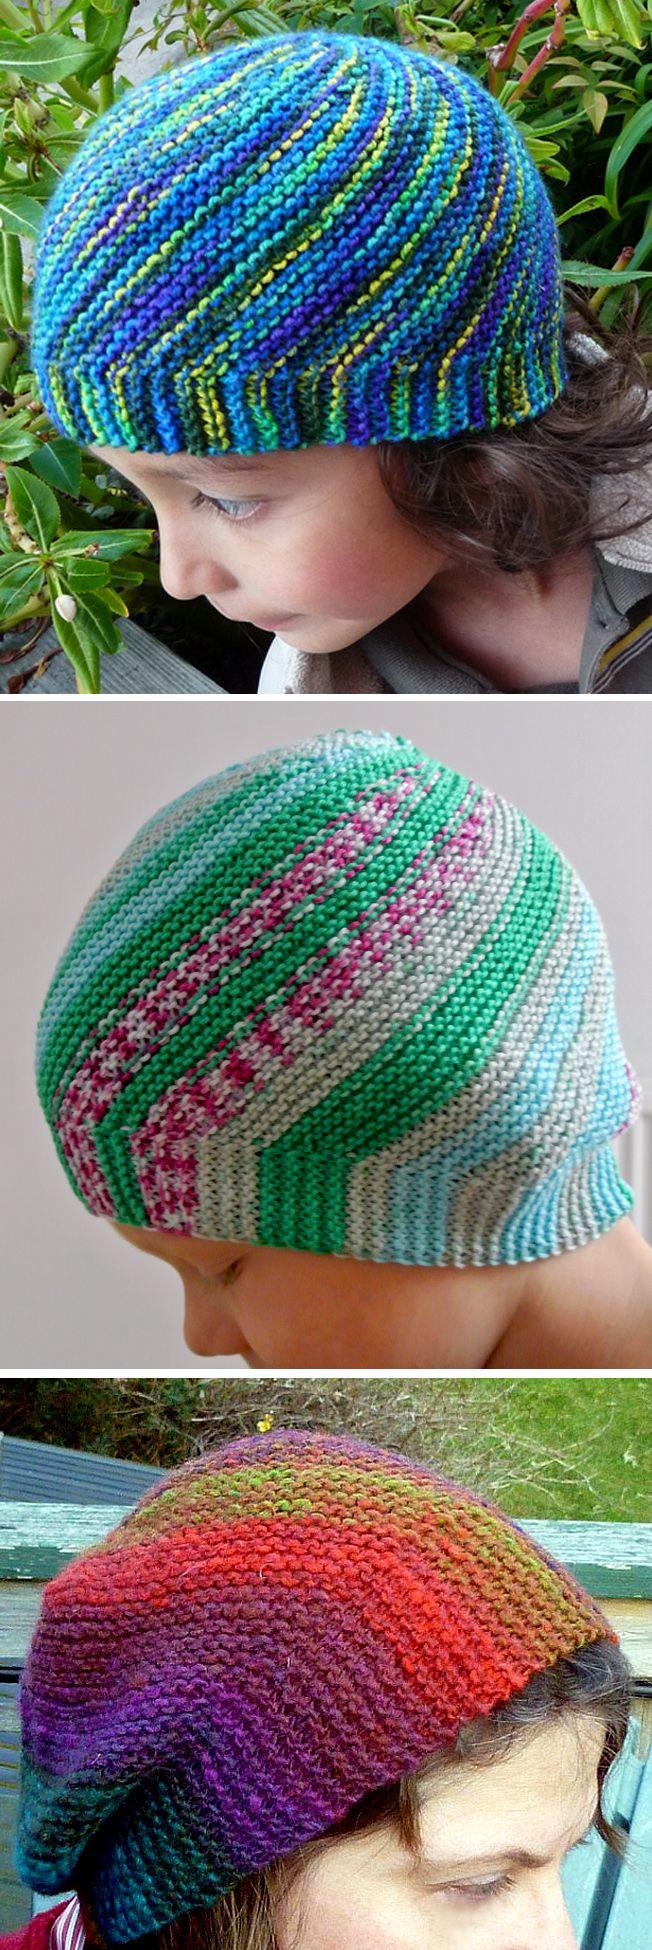 Free Knitting Pattern for Vertigo Hat - This hat is worked flat with short rows that create swirls of multi-colored or self-striping yarn. Designed by Kerstin Michler. Pictured project by sockpr0n, Tilde, and Spindrift. Available in English, Dutch, German, and Portuguese.